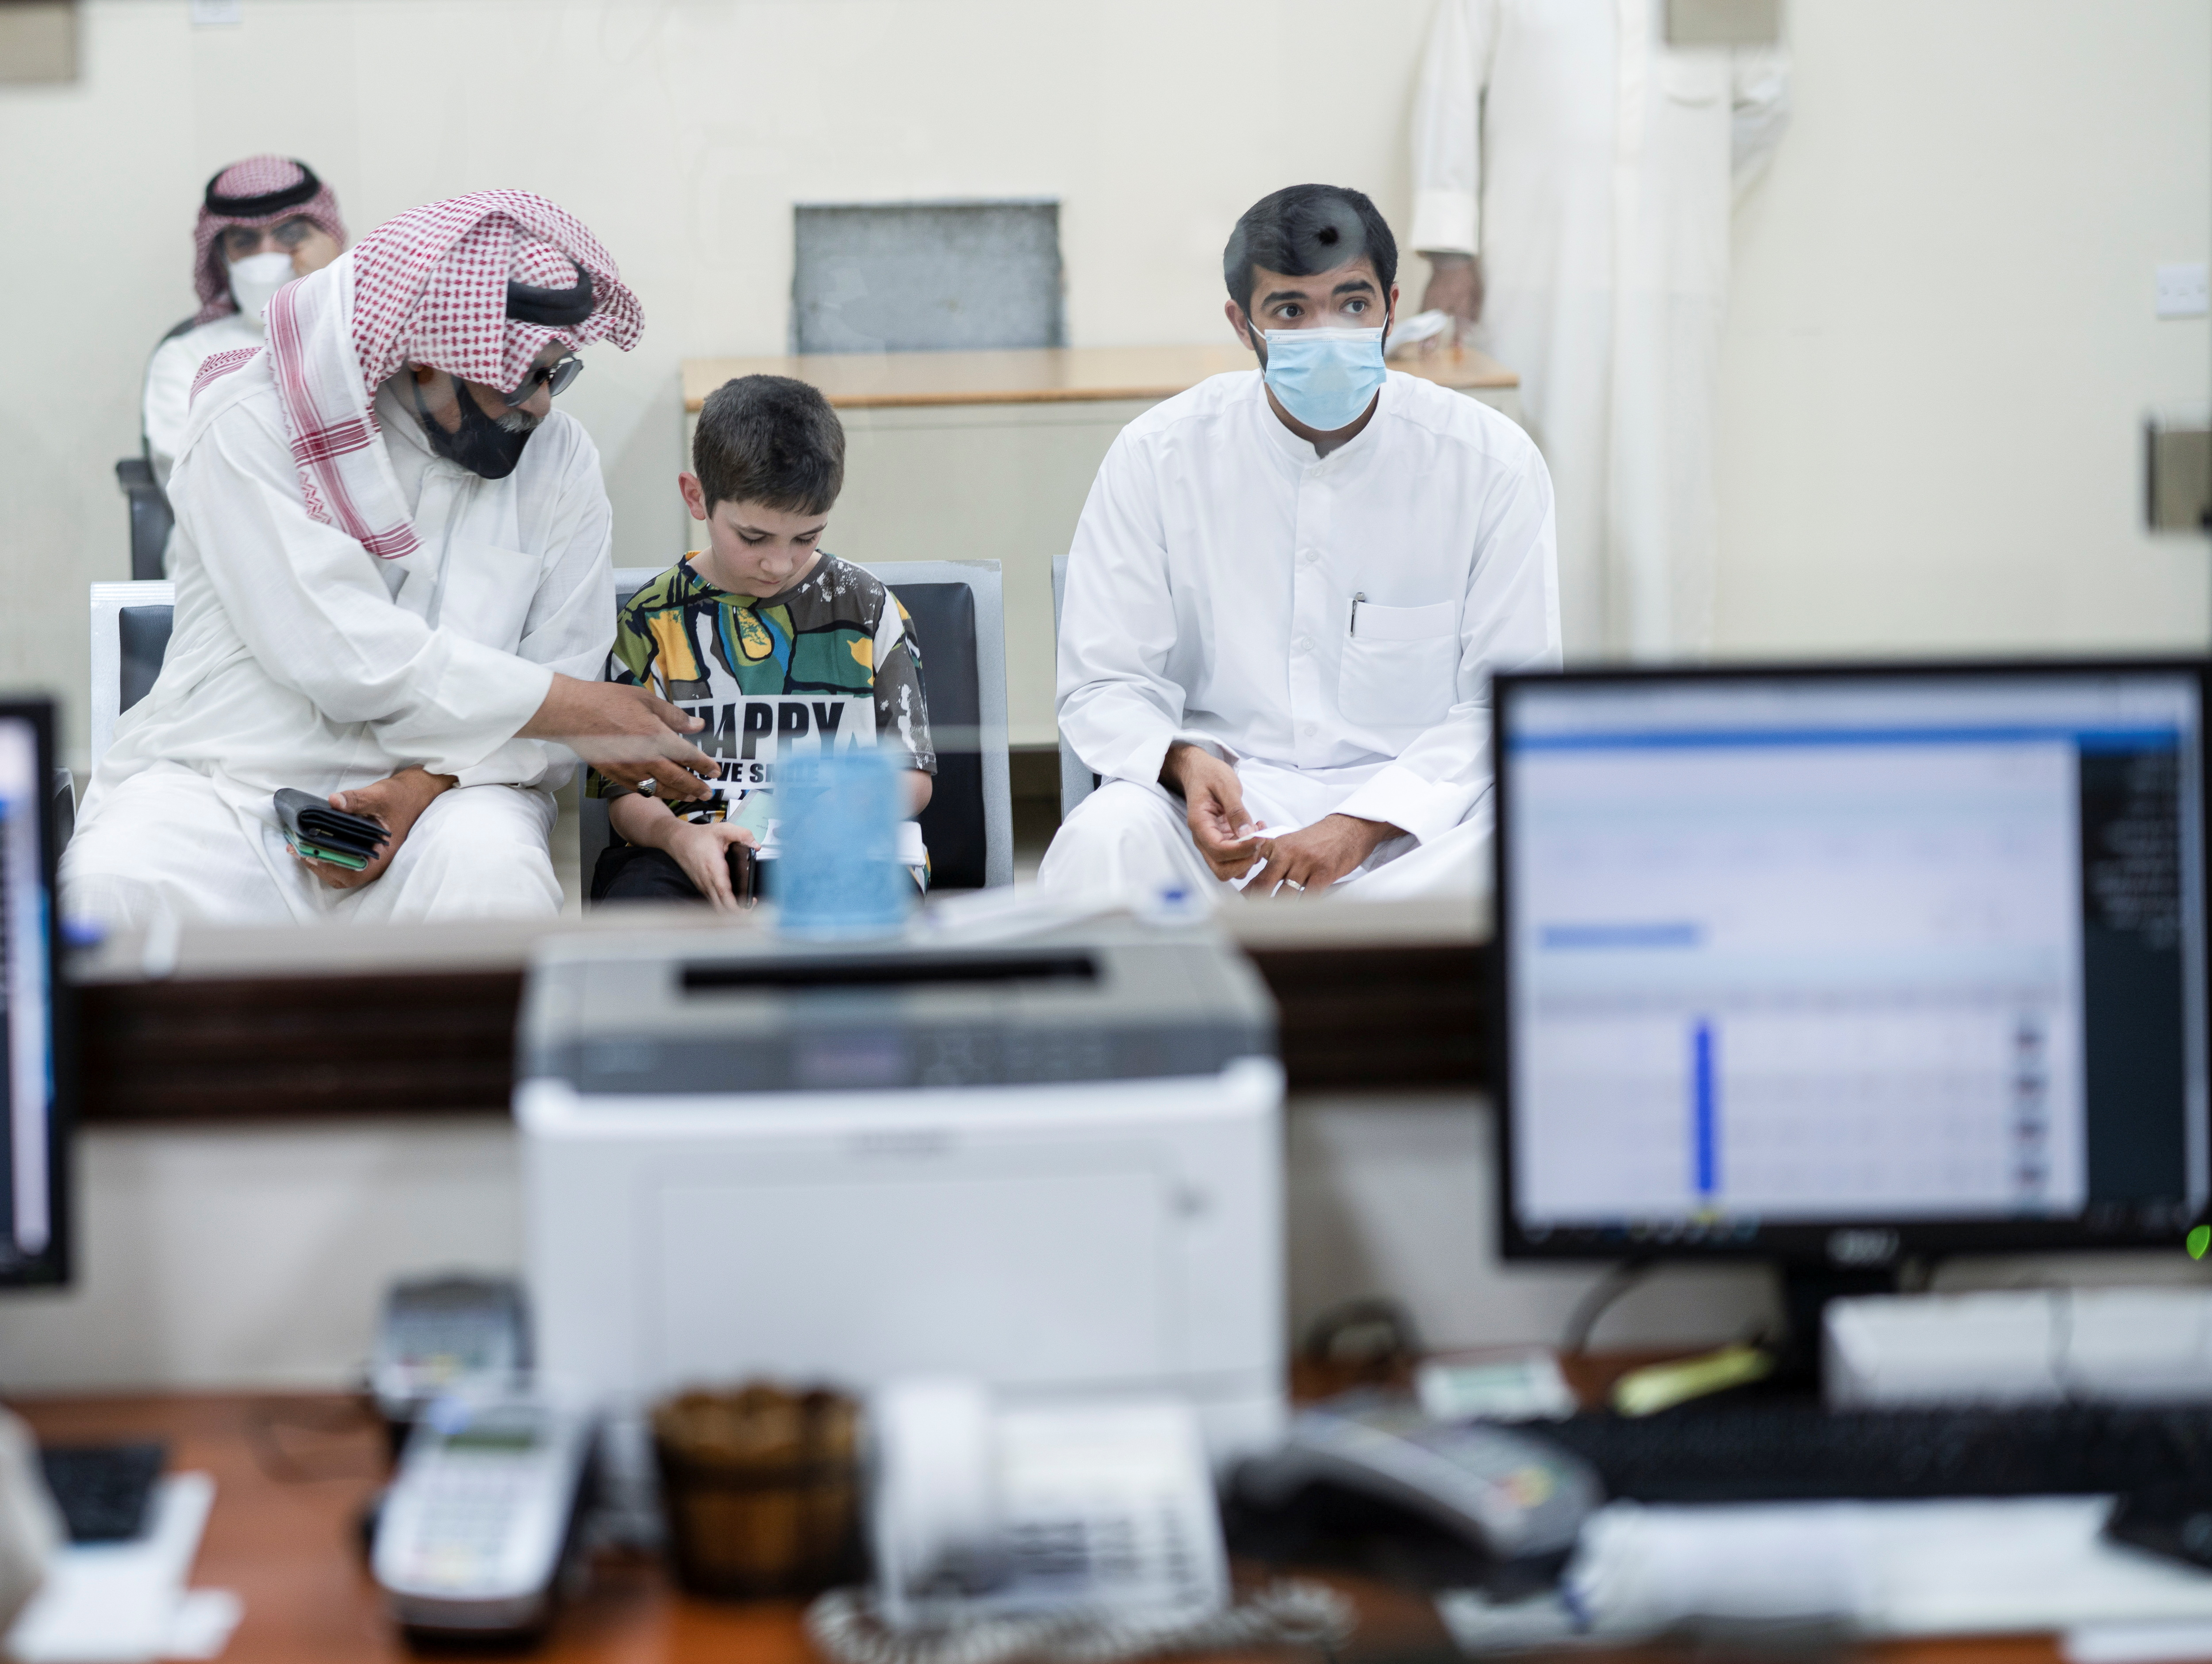 Stateless residents wait to get their Security Cards that are issued by the  Central Agency for Remedying Illegal Residents Status in Ardiya, Kuwait September 27, 2021. Picture taken September 27, 2021. REUTERS/Stephanie McGehee